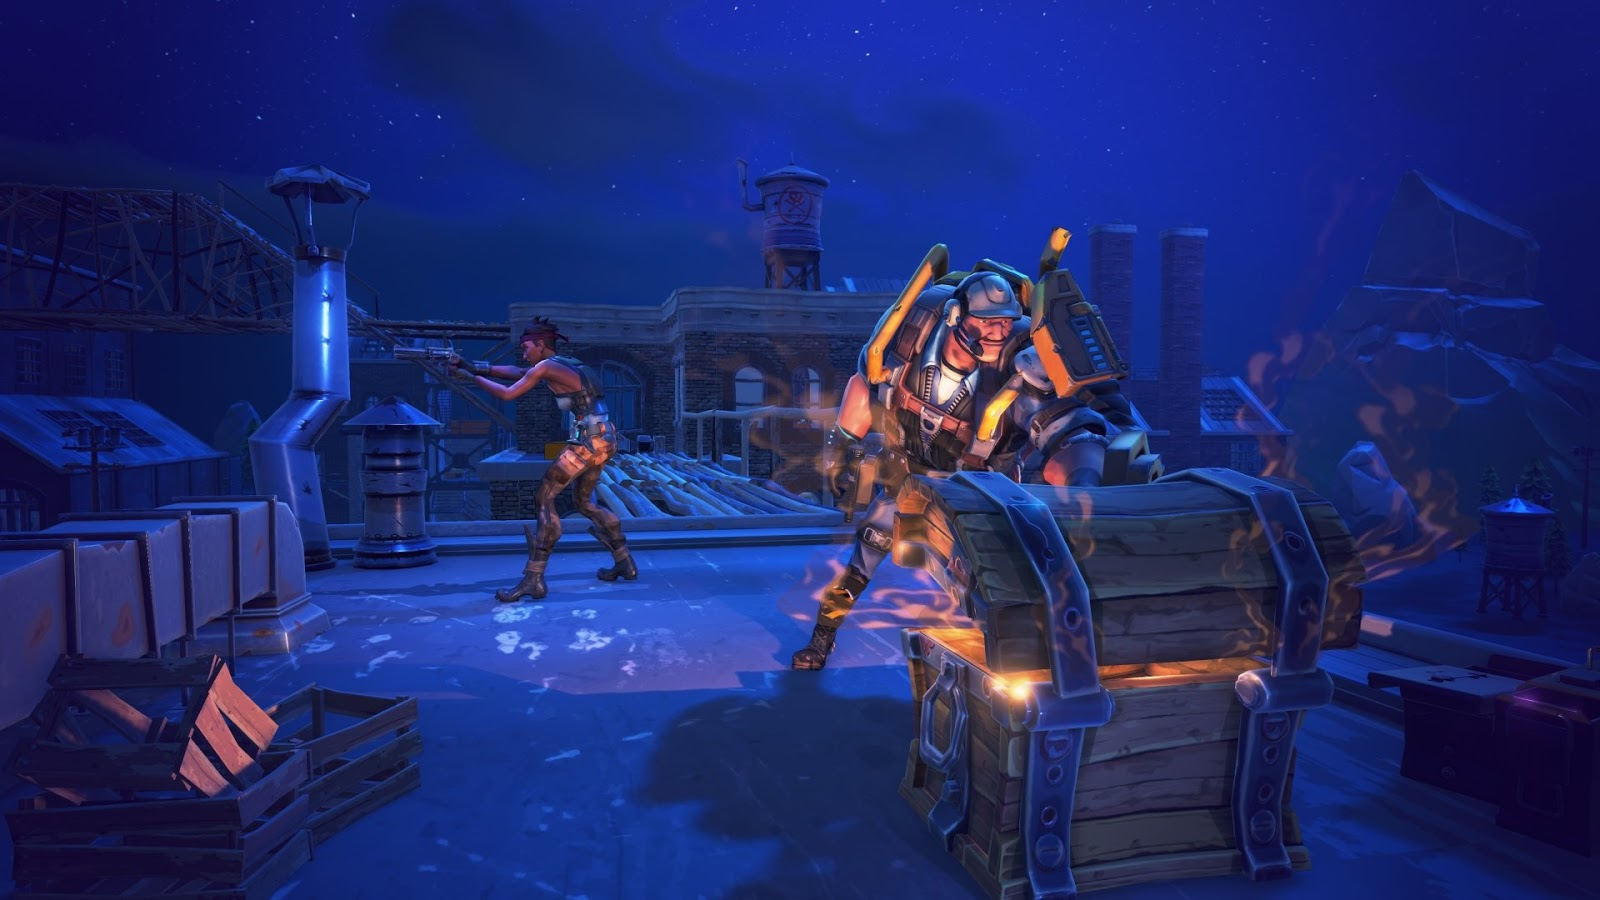 Download fortnite hd wallpapers read games review play - Fortnite save the world wallpaper ...